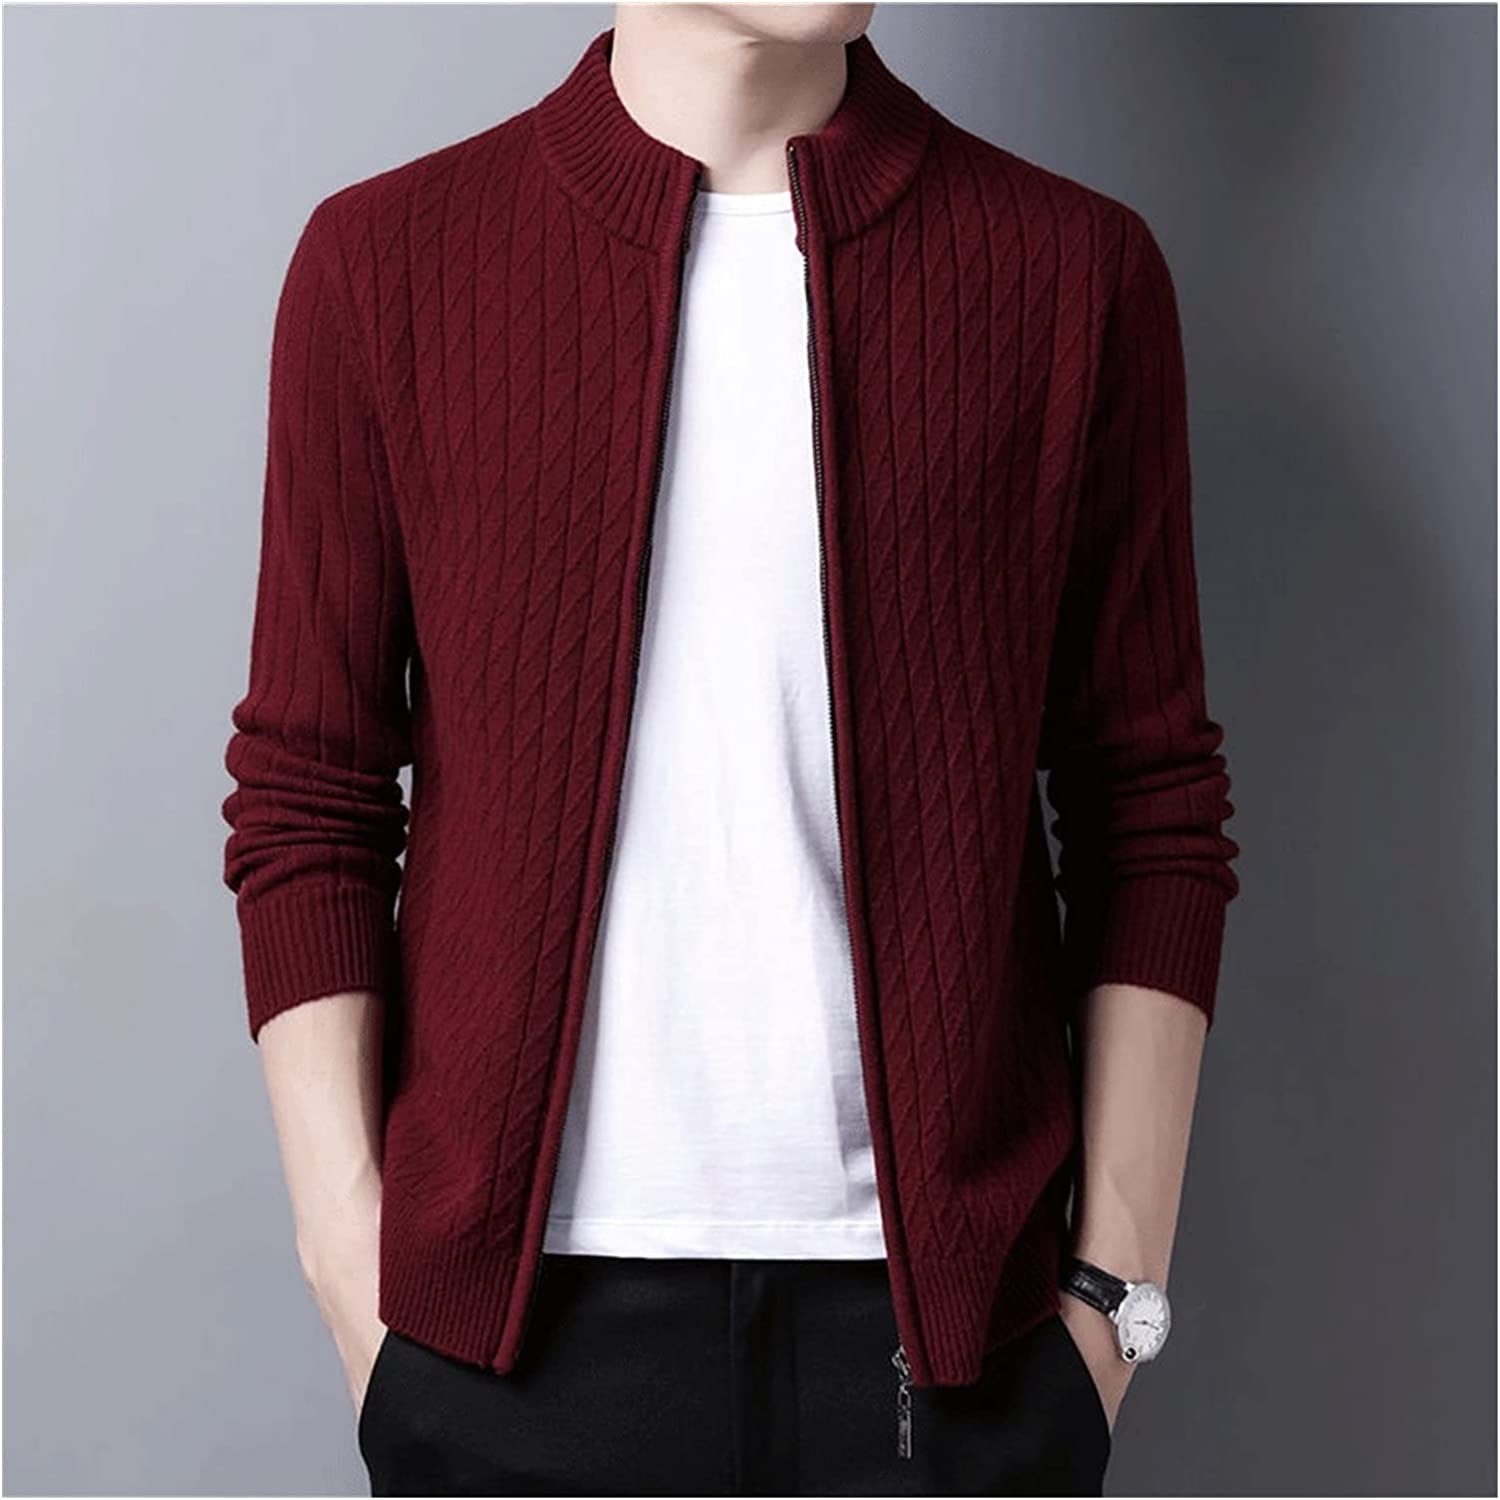 XJJZS Men Wool Cardigan Men Clothing Autumn Winter Thick Warm Sweatercoat Sweater (Color : Red, Size : XL code)